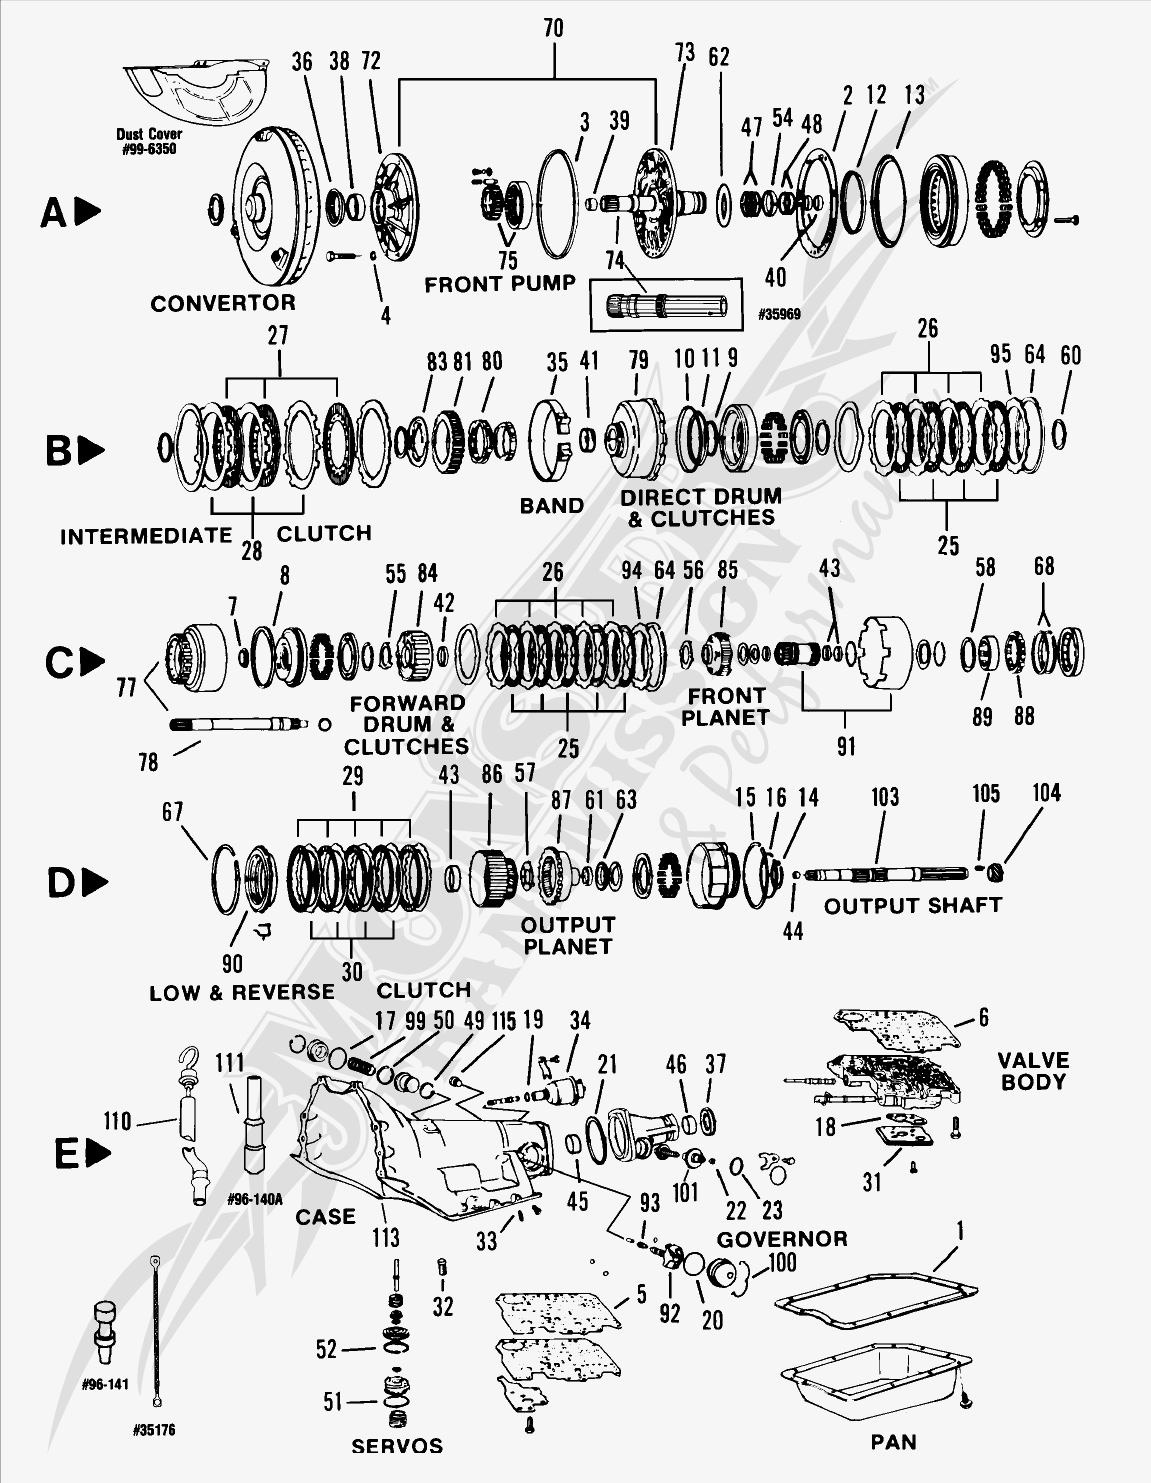 Turbo 350c th350c automatic transmission parts and diagram rh monstertransmission